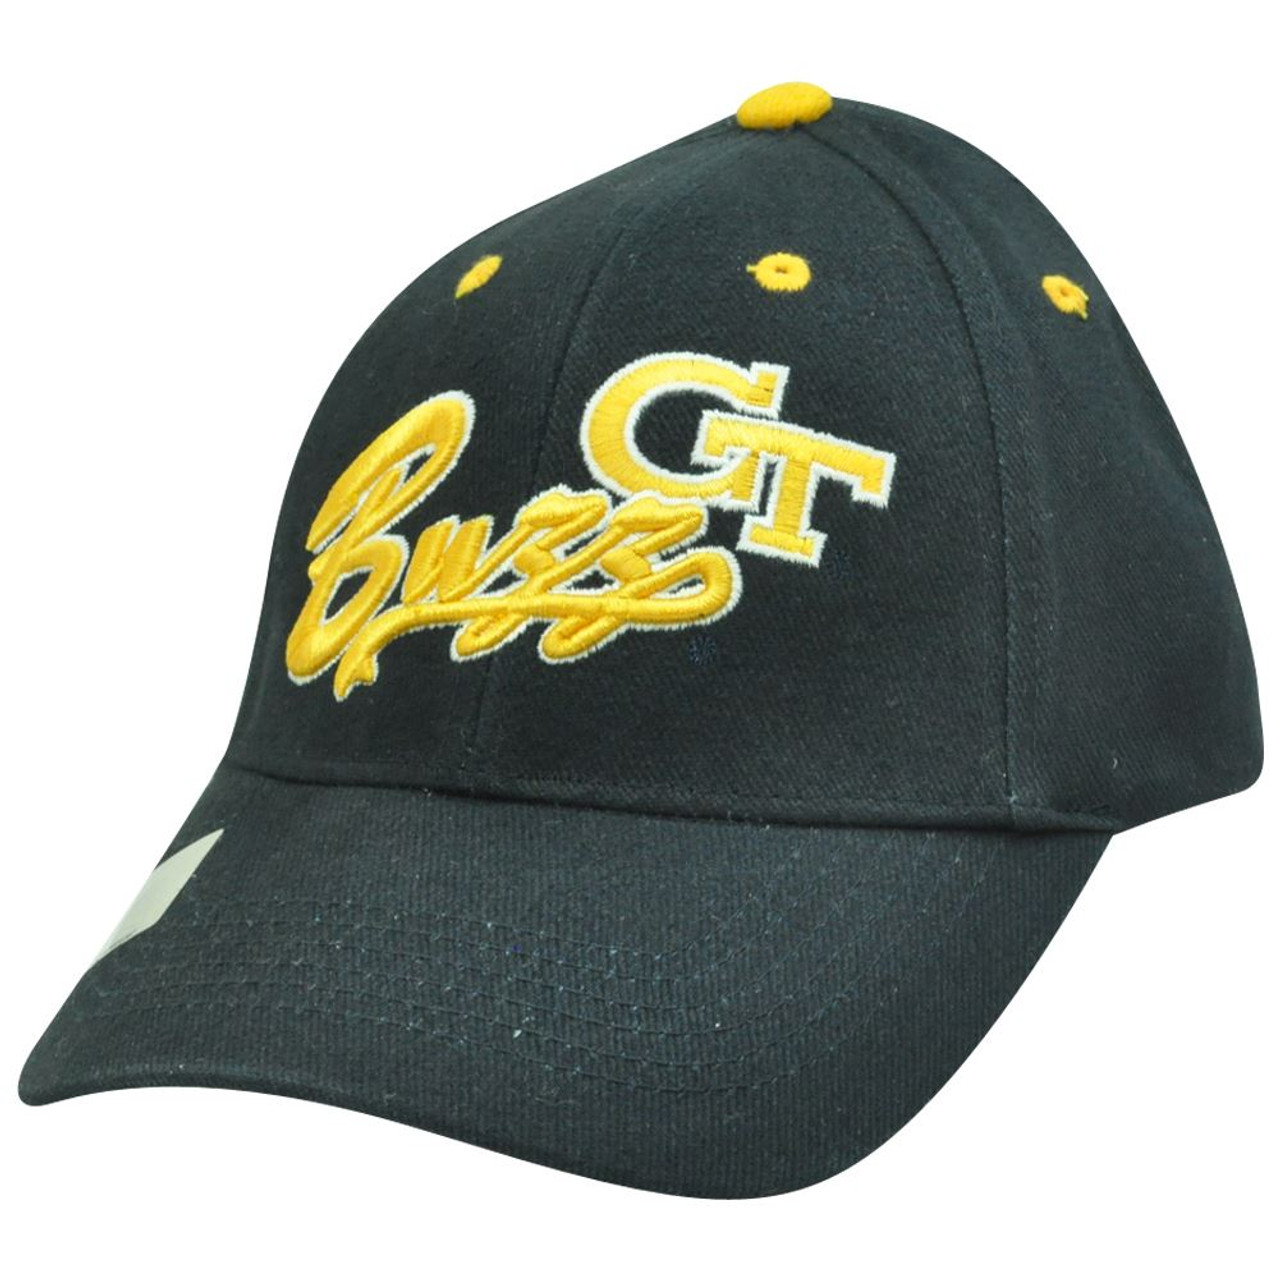 sneakers for cheap 8ce85 67b81 NCAA Georgia Tech Yellow Jackets Buzz Construct Adjustable Velcro Script Hat  Cap - Cap Store Online.com